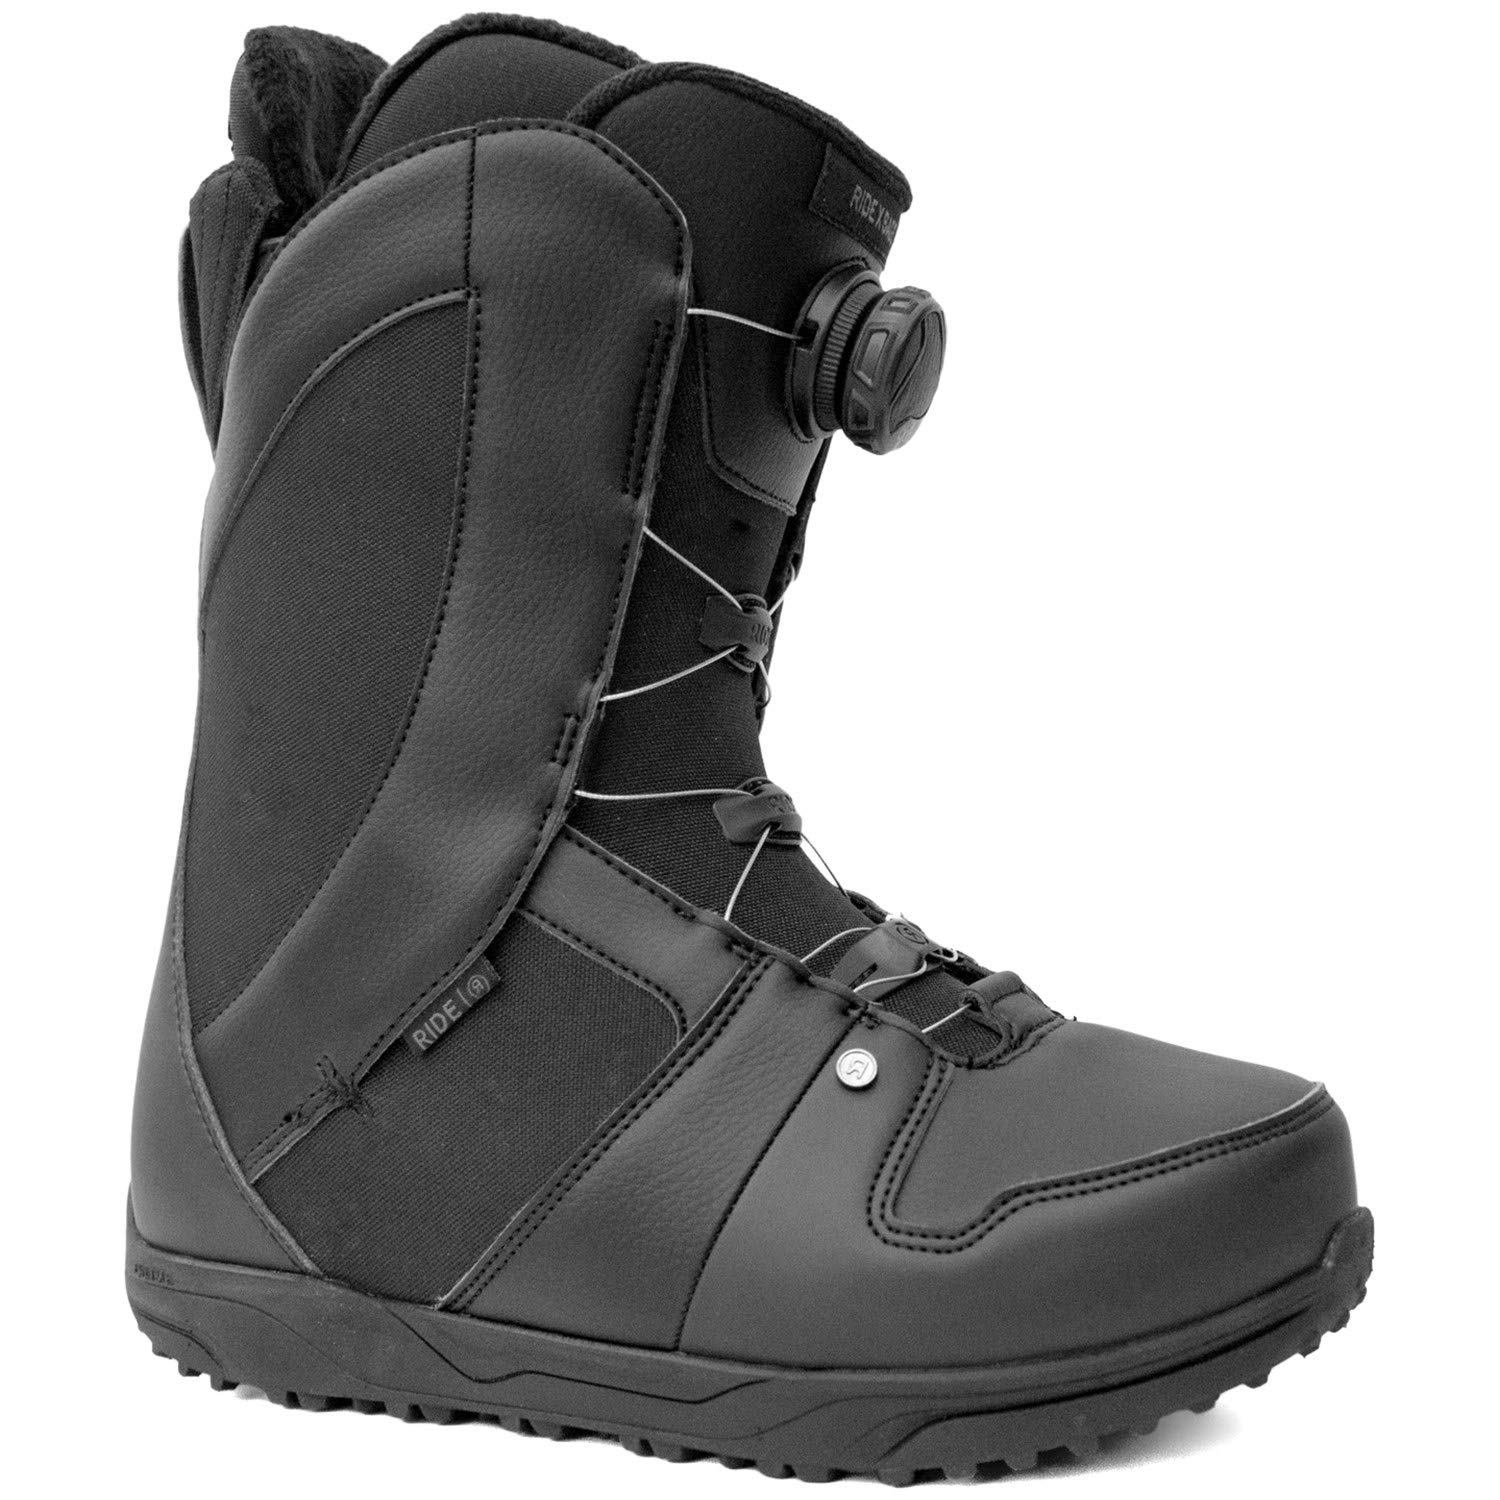 Ride Sage 2019 Snowboard Boot - Women's Black 5 by Ride